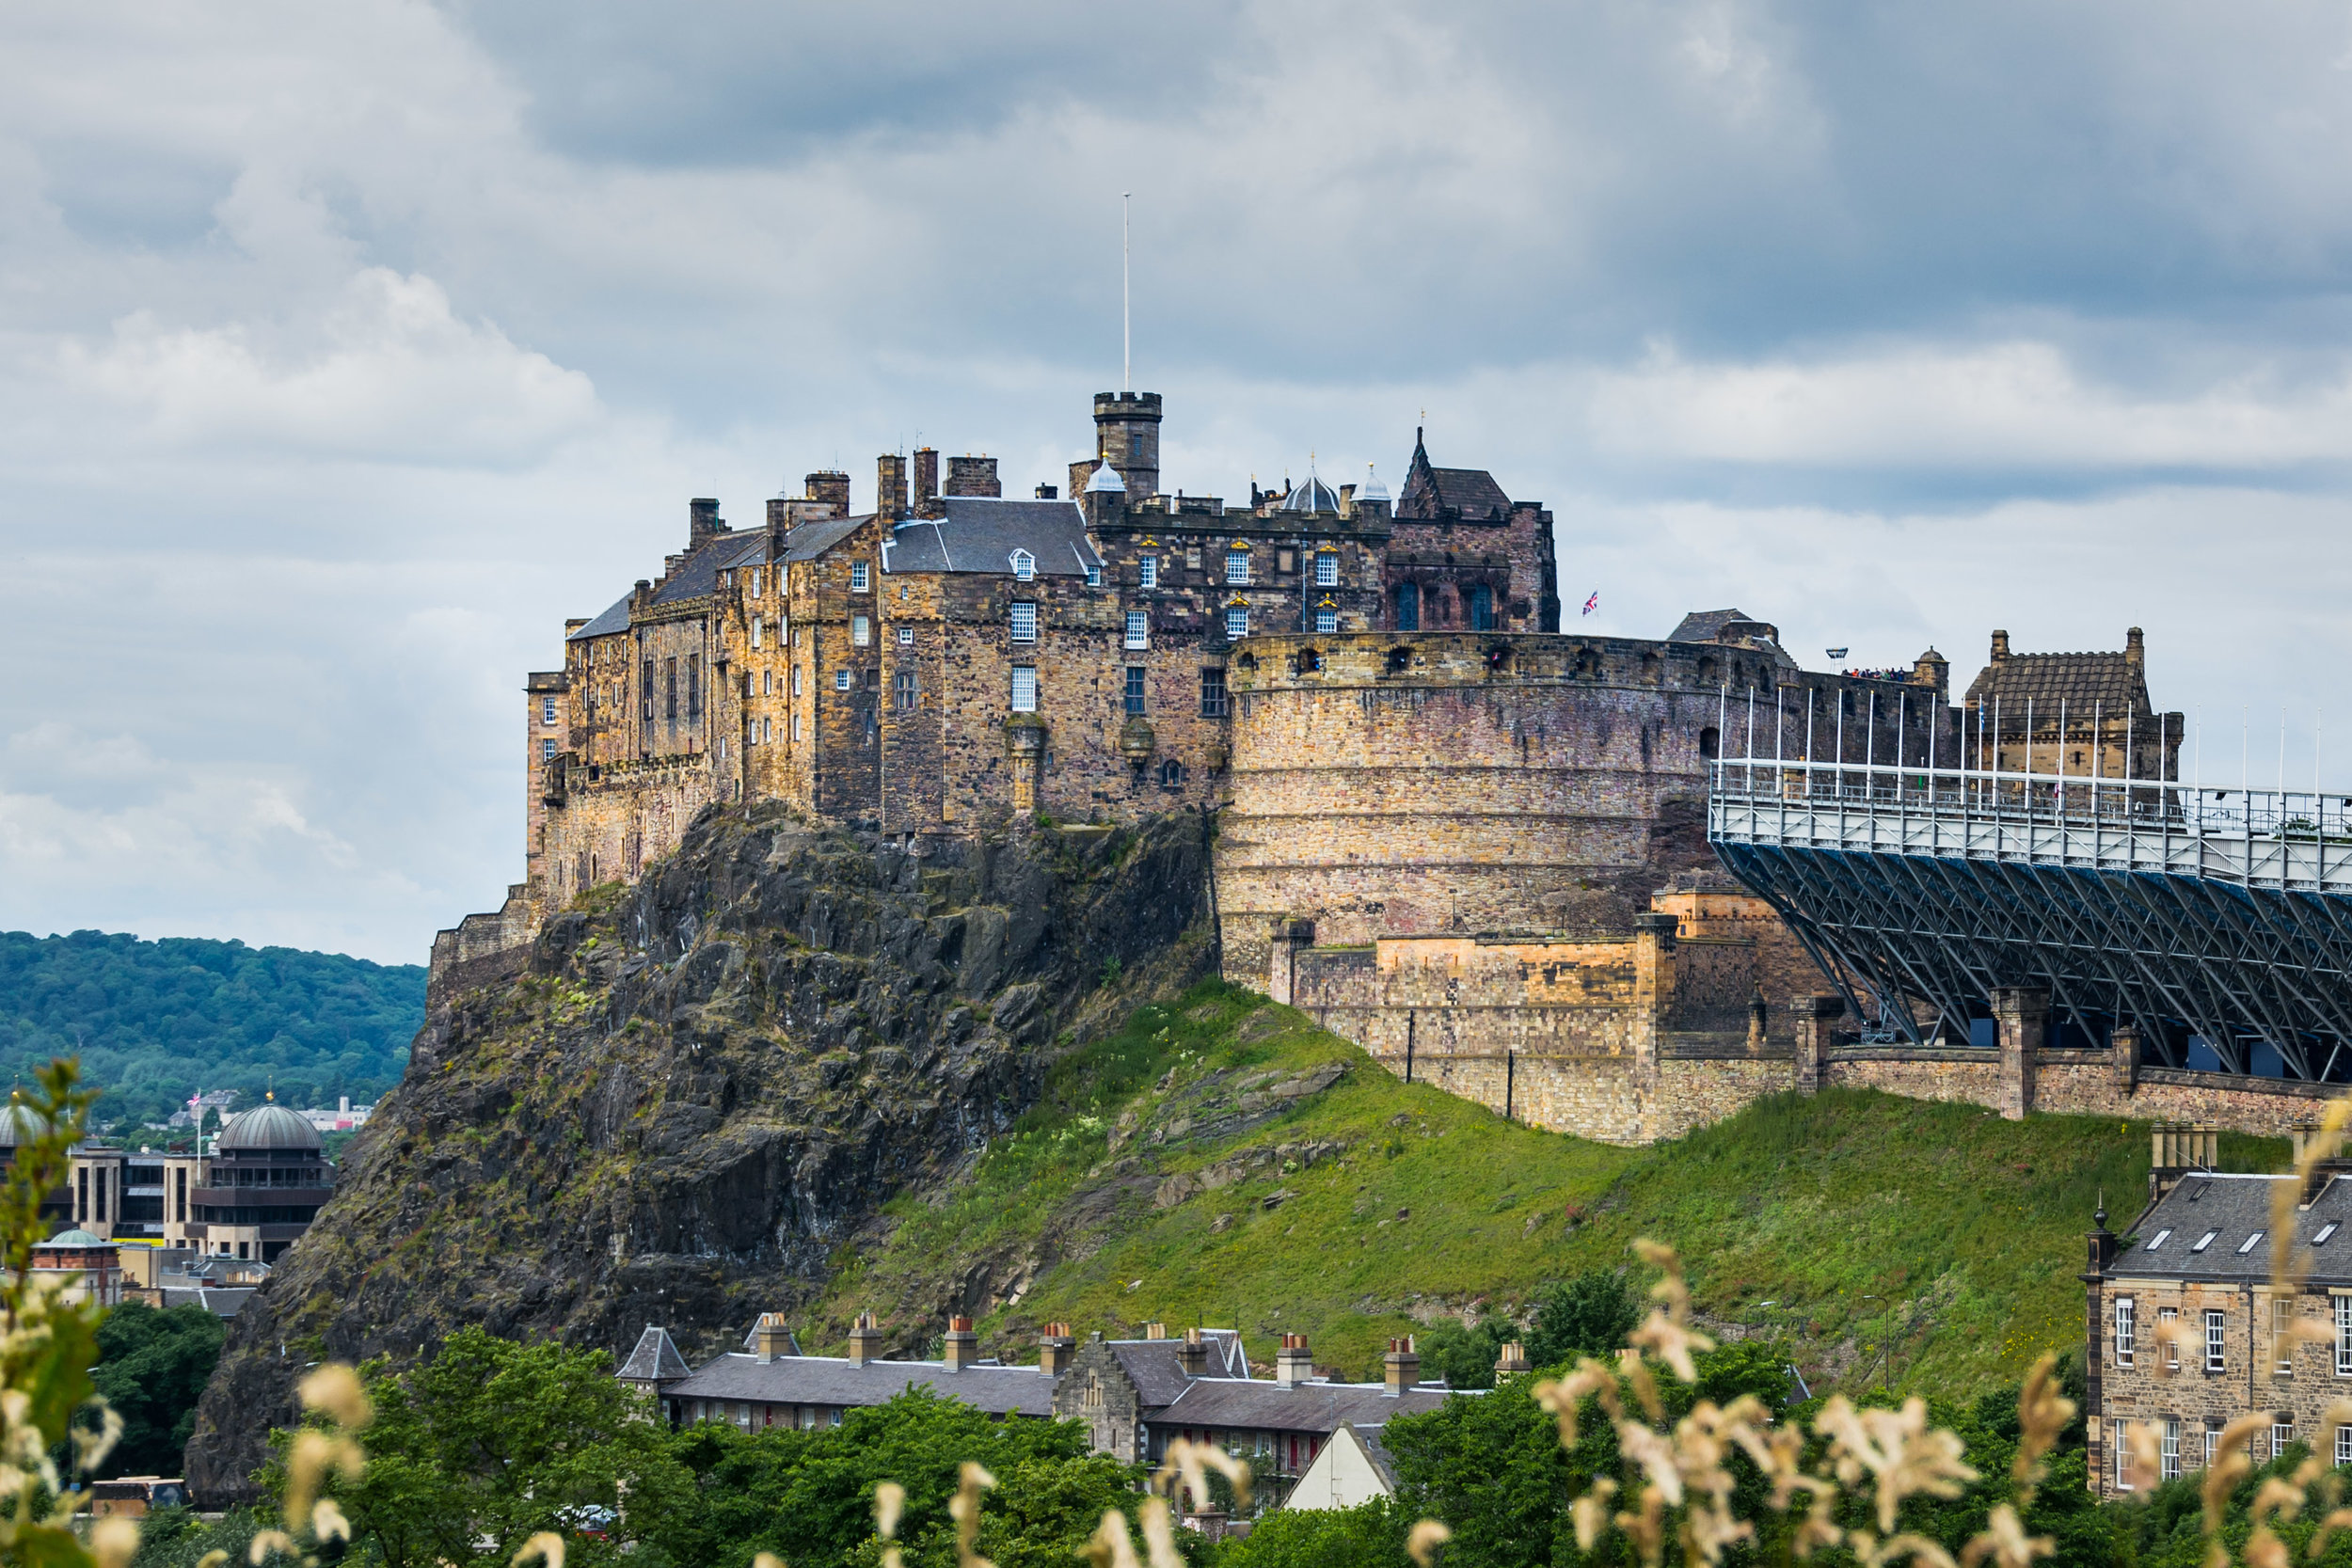 Another shot of Edinburgh Castle